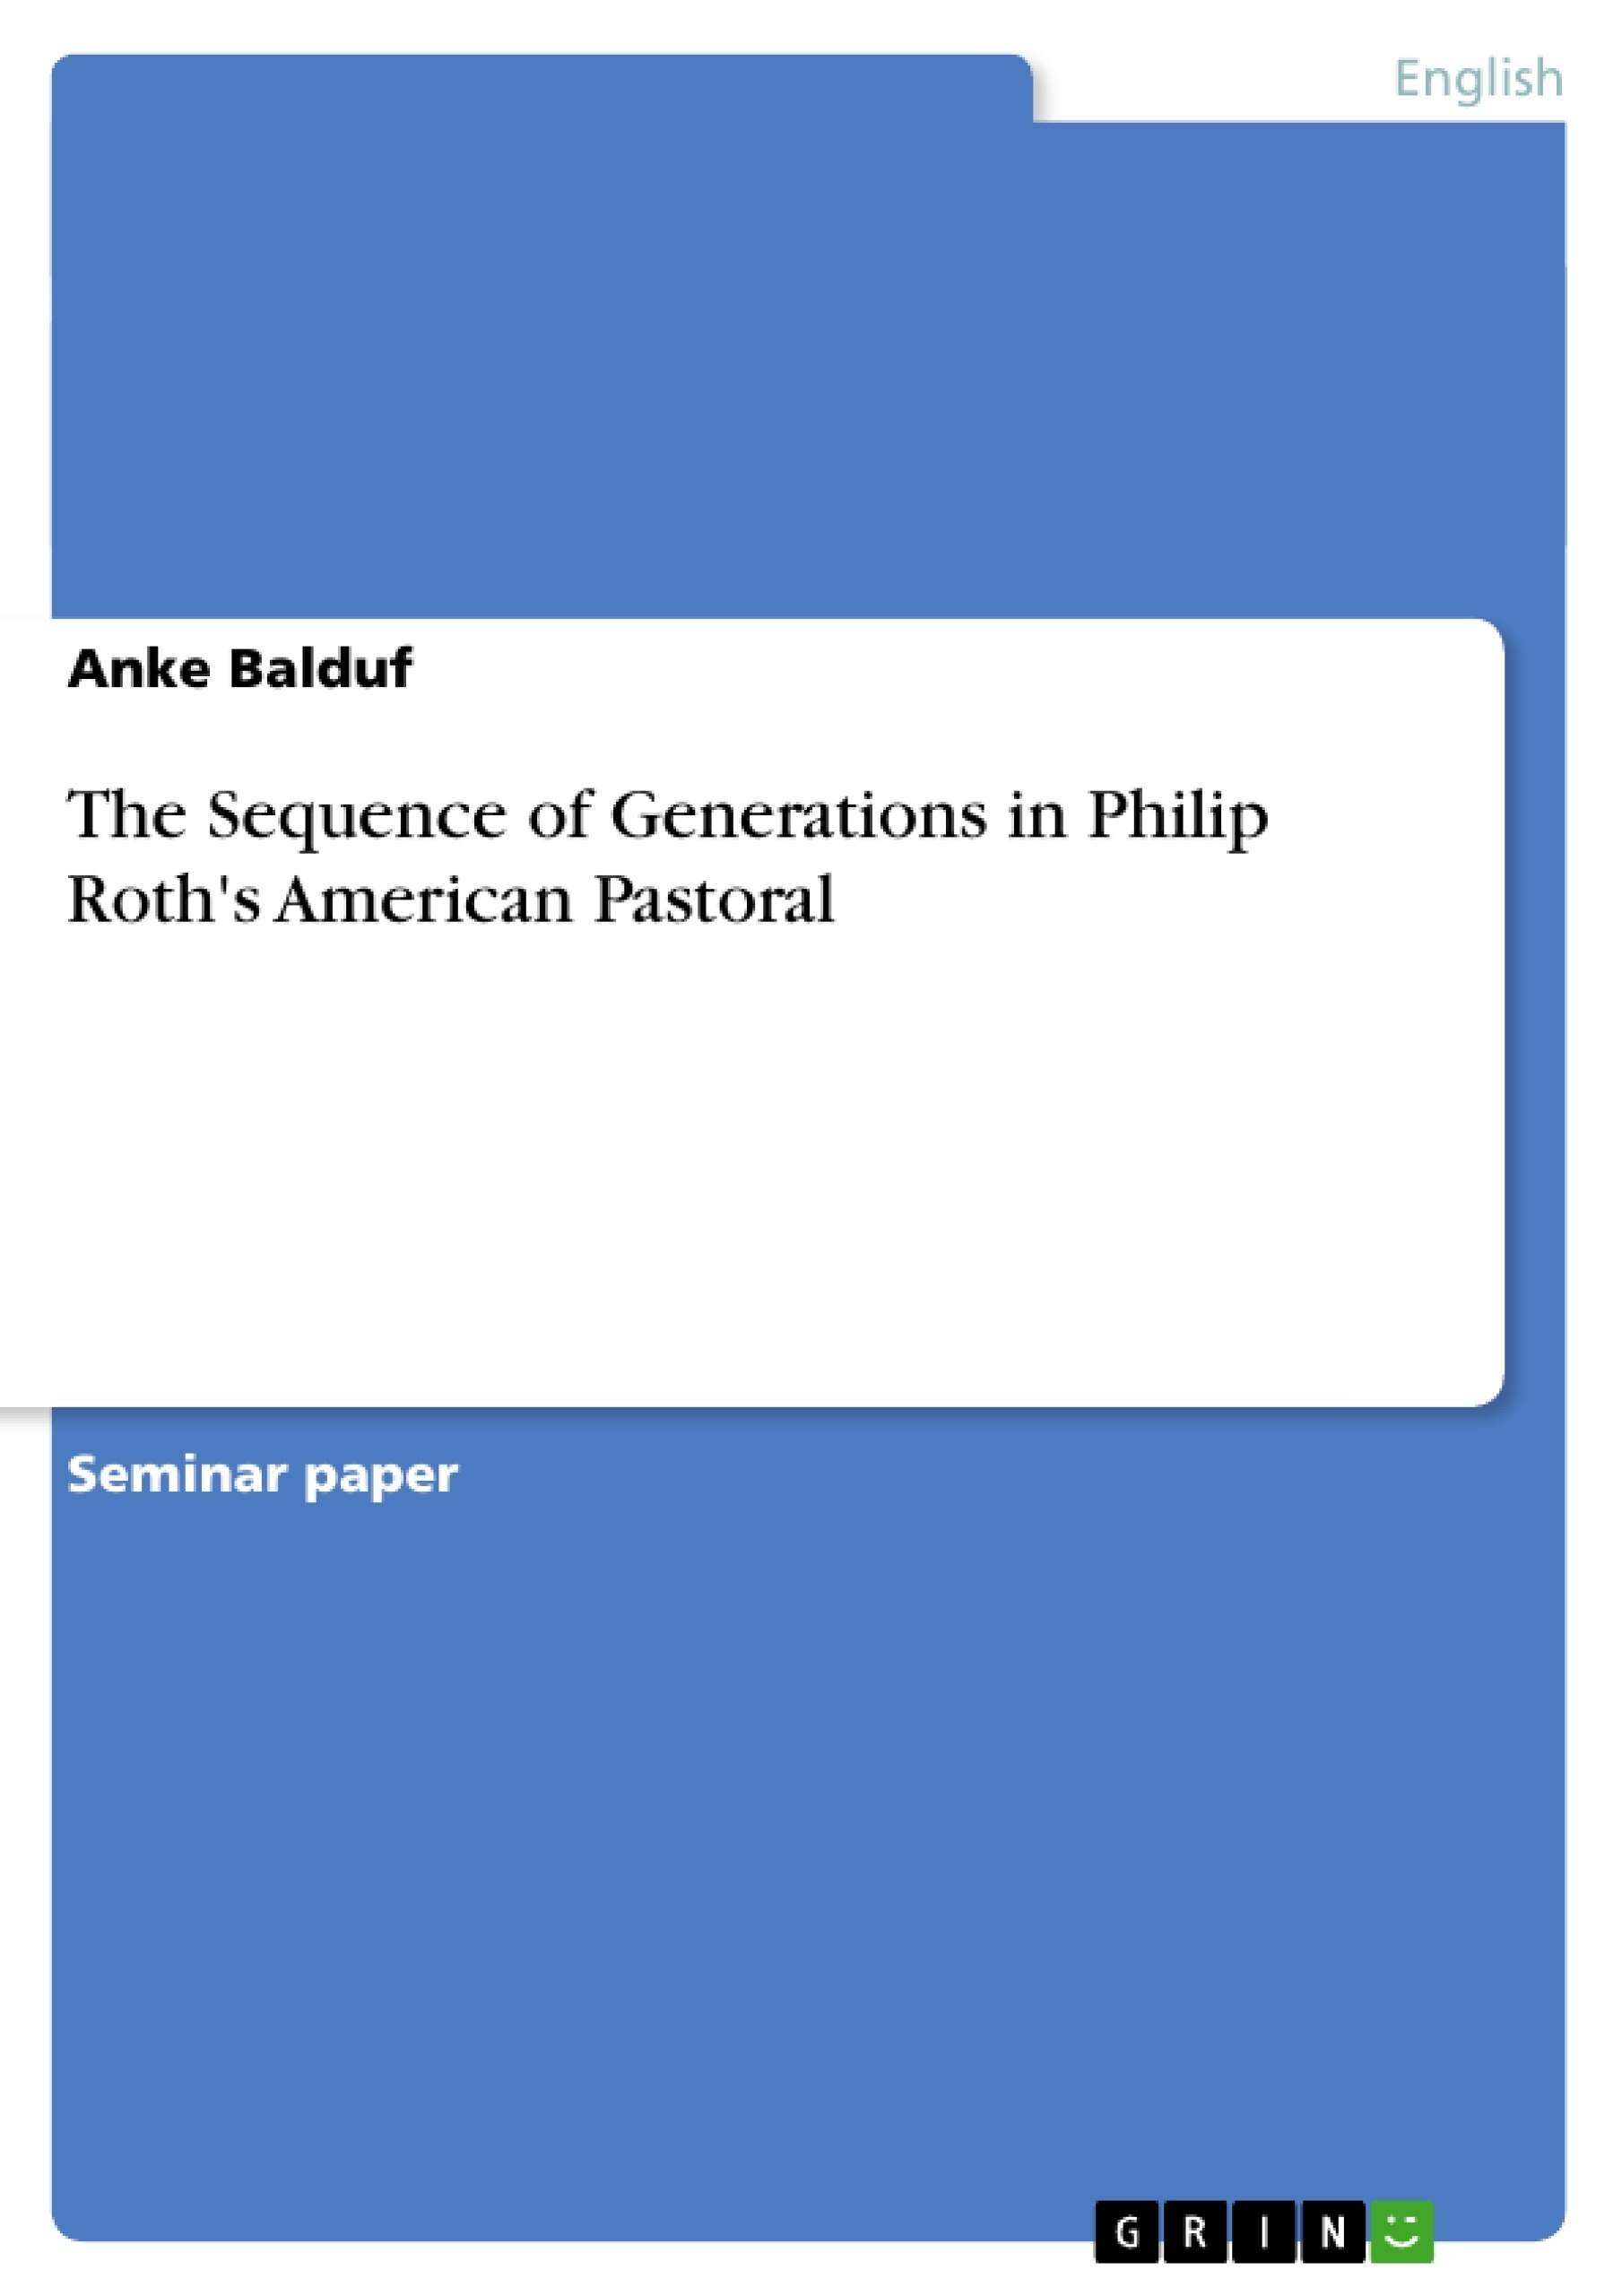 Title: The Sequence of Generations in Philip Roth's American Pastoral